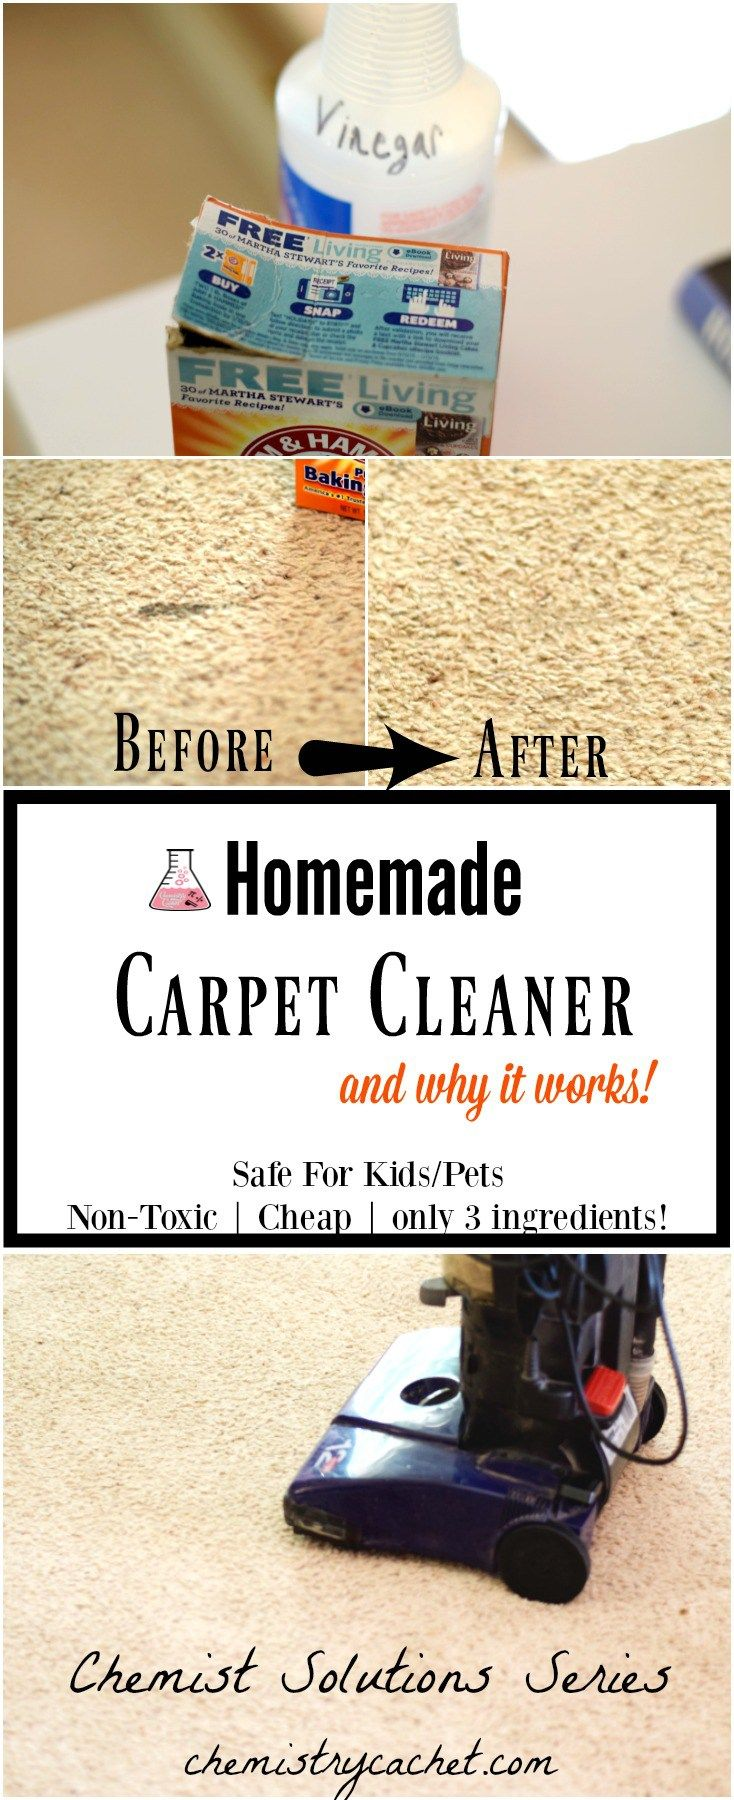 This easy homemade carpet cleaner is effective, safe, and only has 3 ingredients! Also some great information on why it actually works!